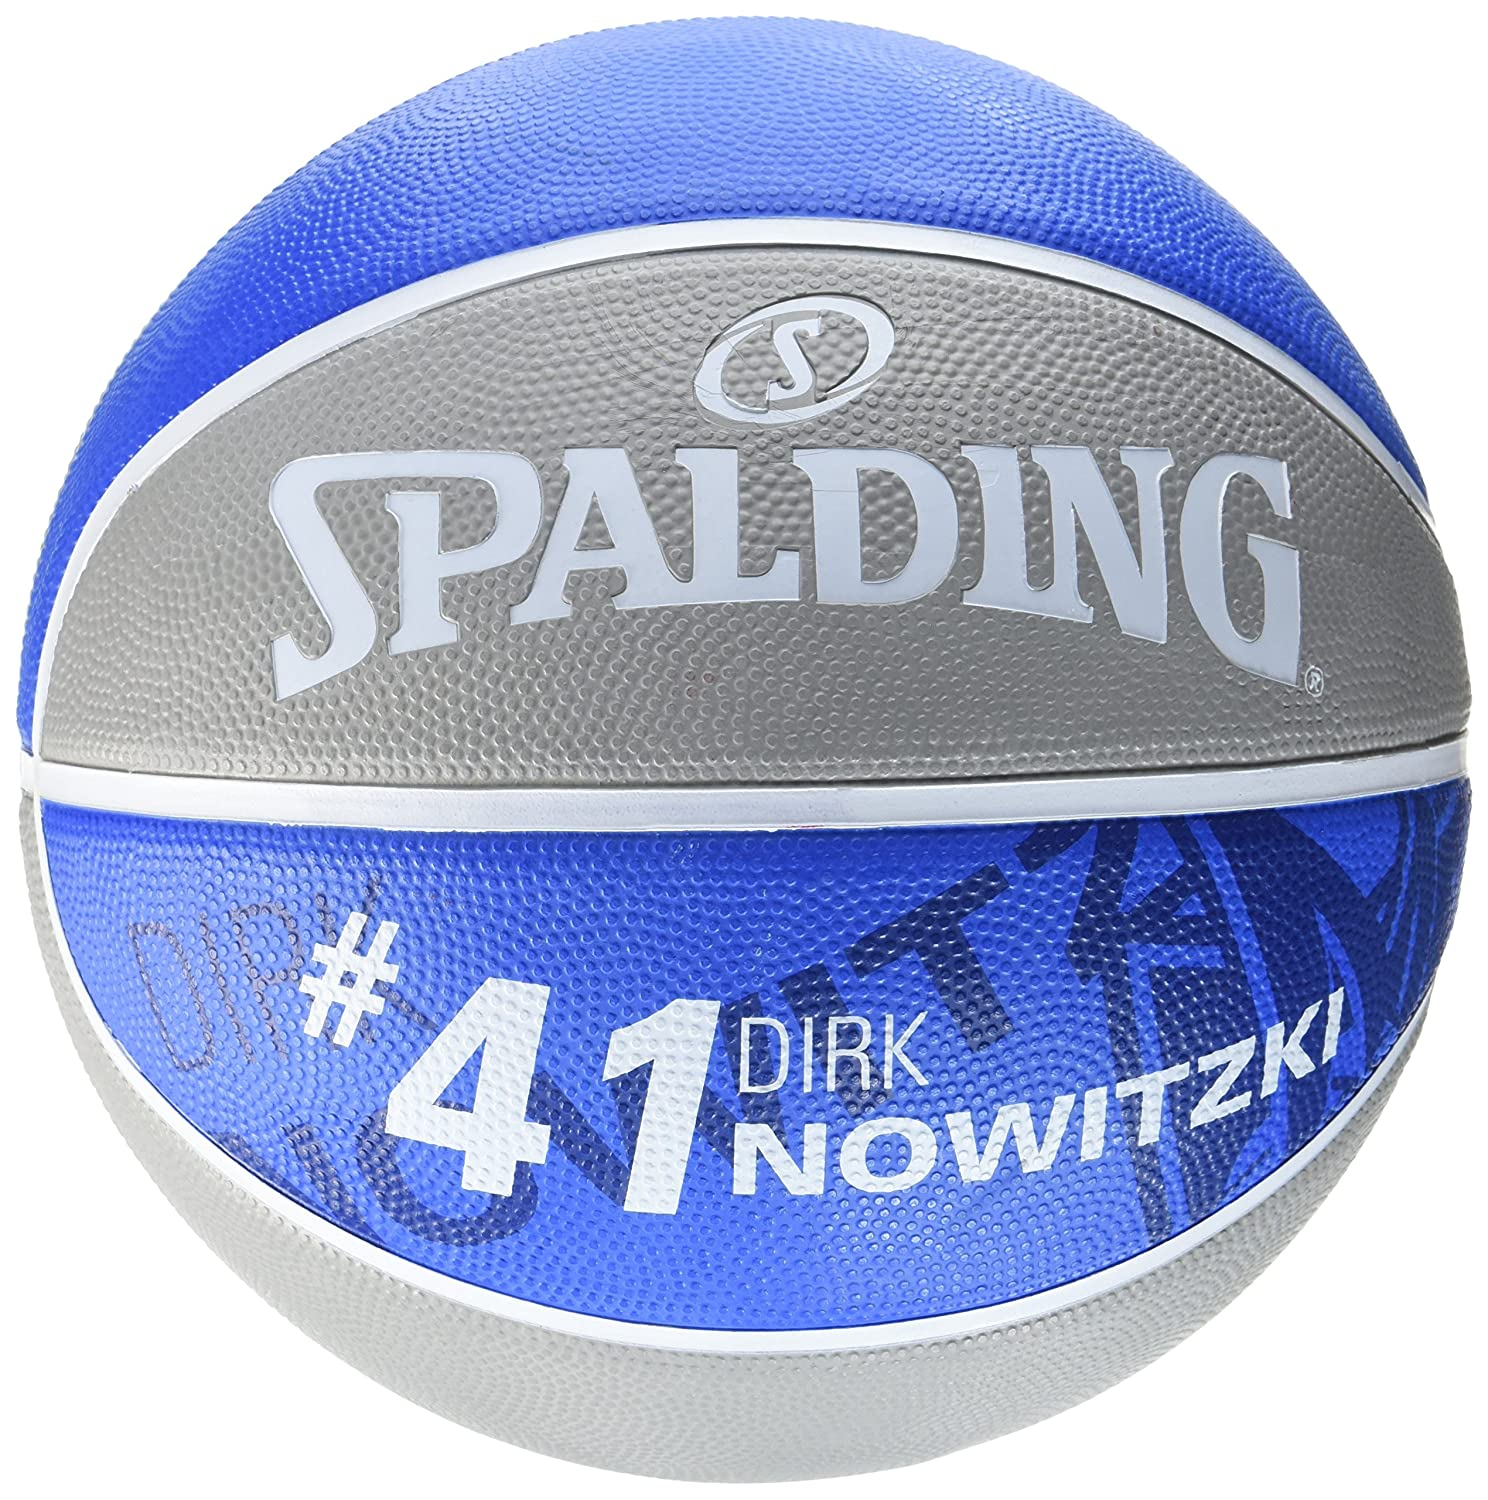 Spalding NBA PLAYER DIRK NOWITZKI SZ.7 fire rot